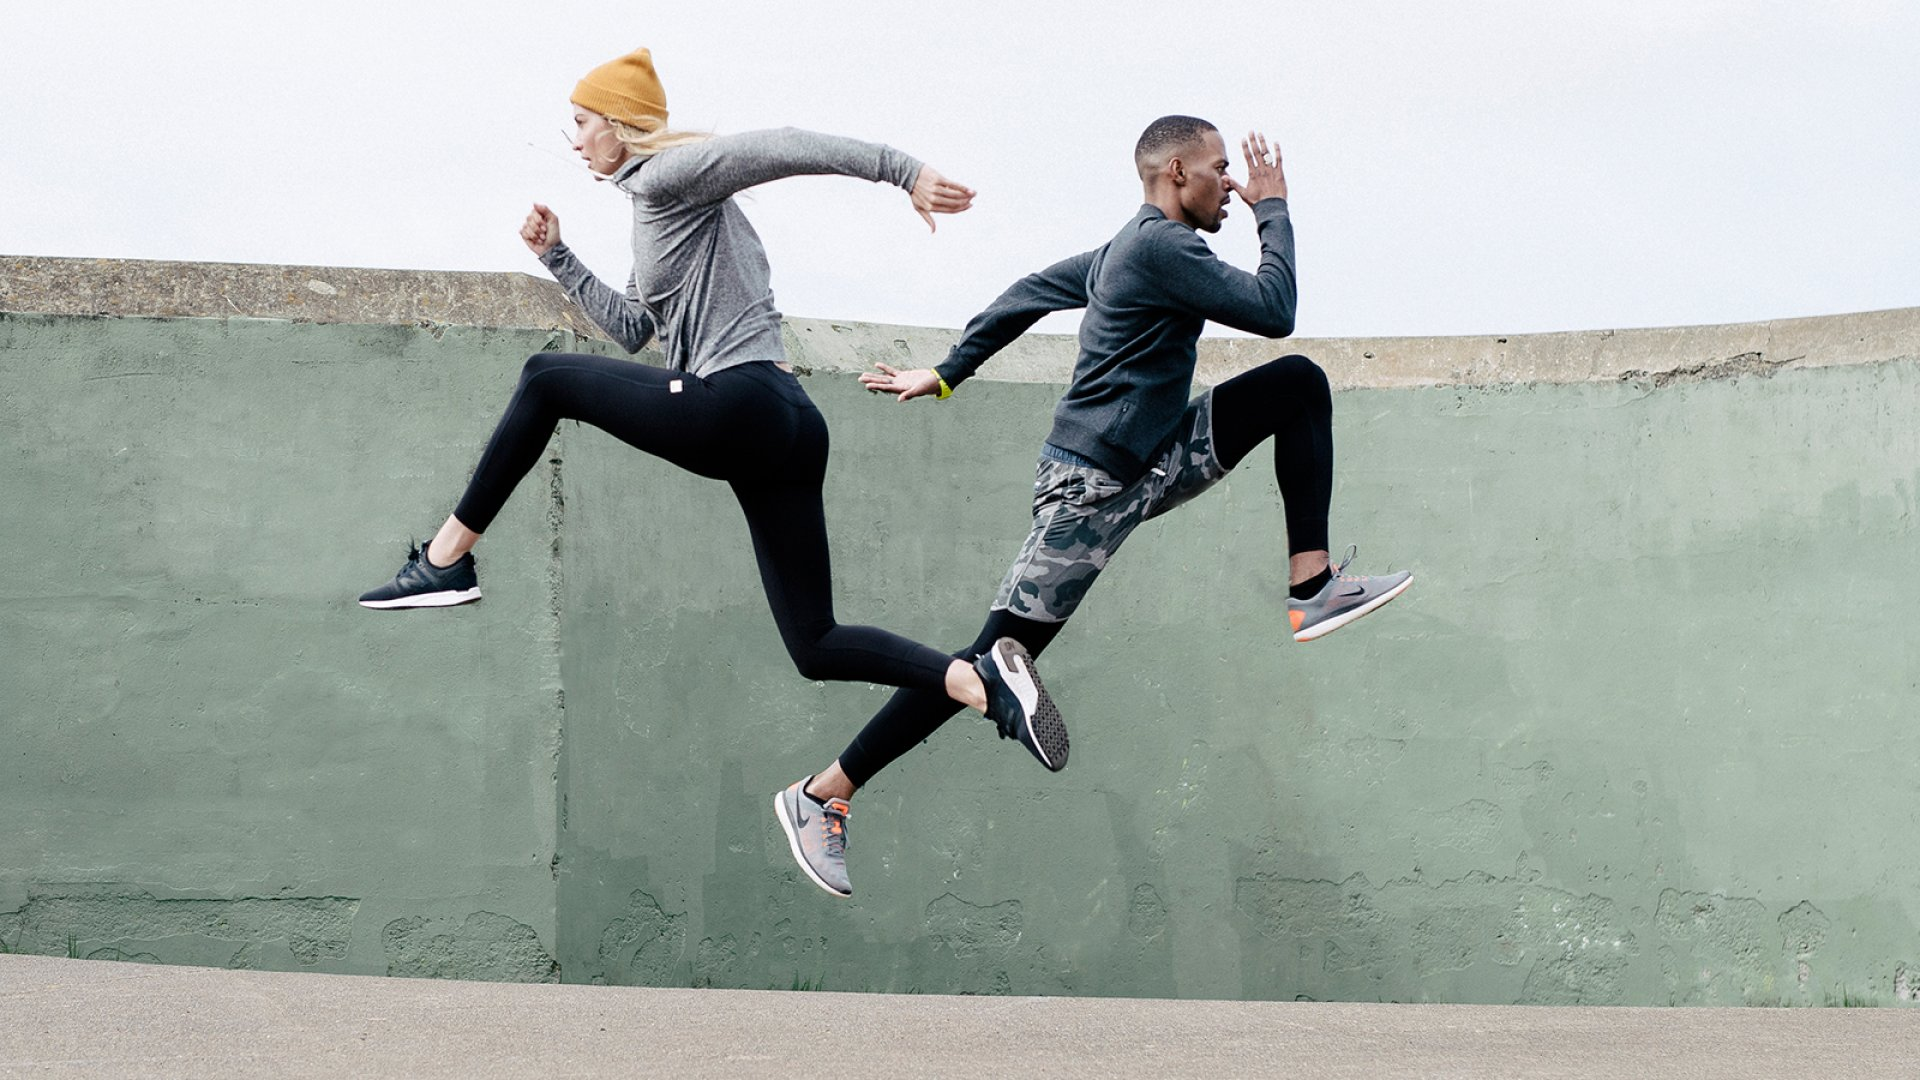 The Next Stage: How to Grow a Successful Omni-Channel Activewear Company